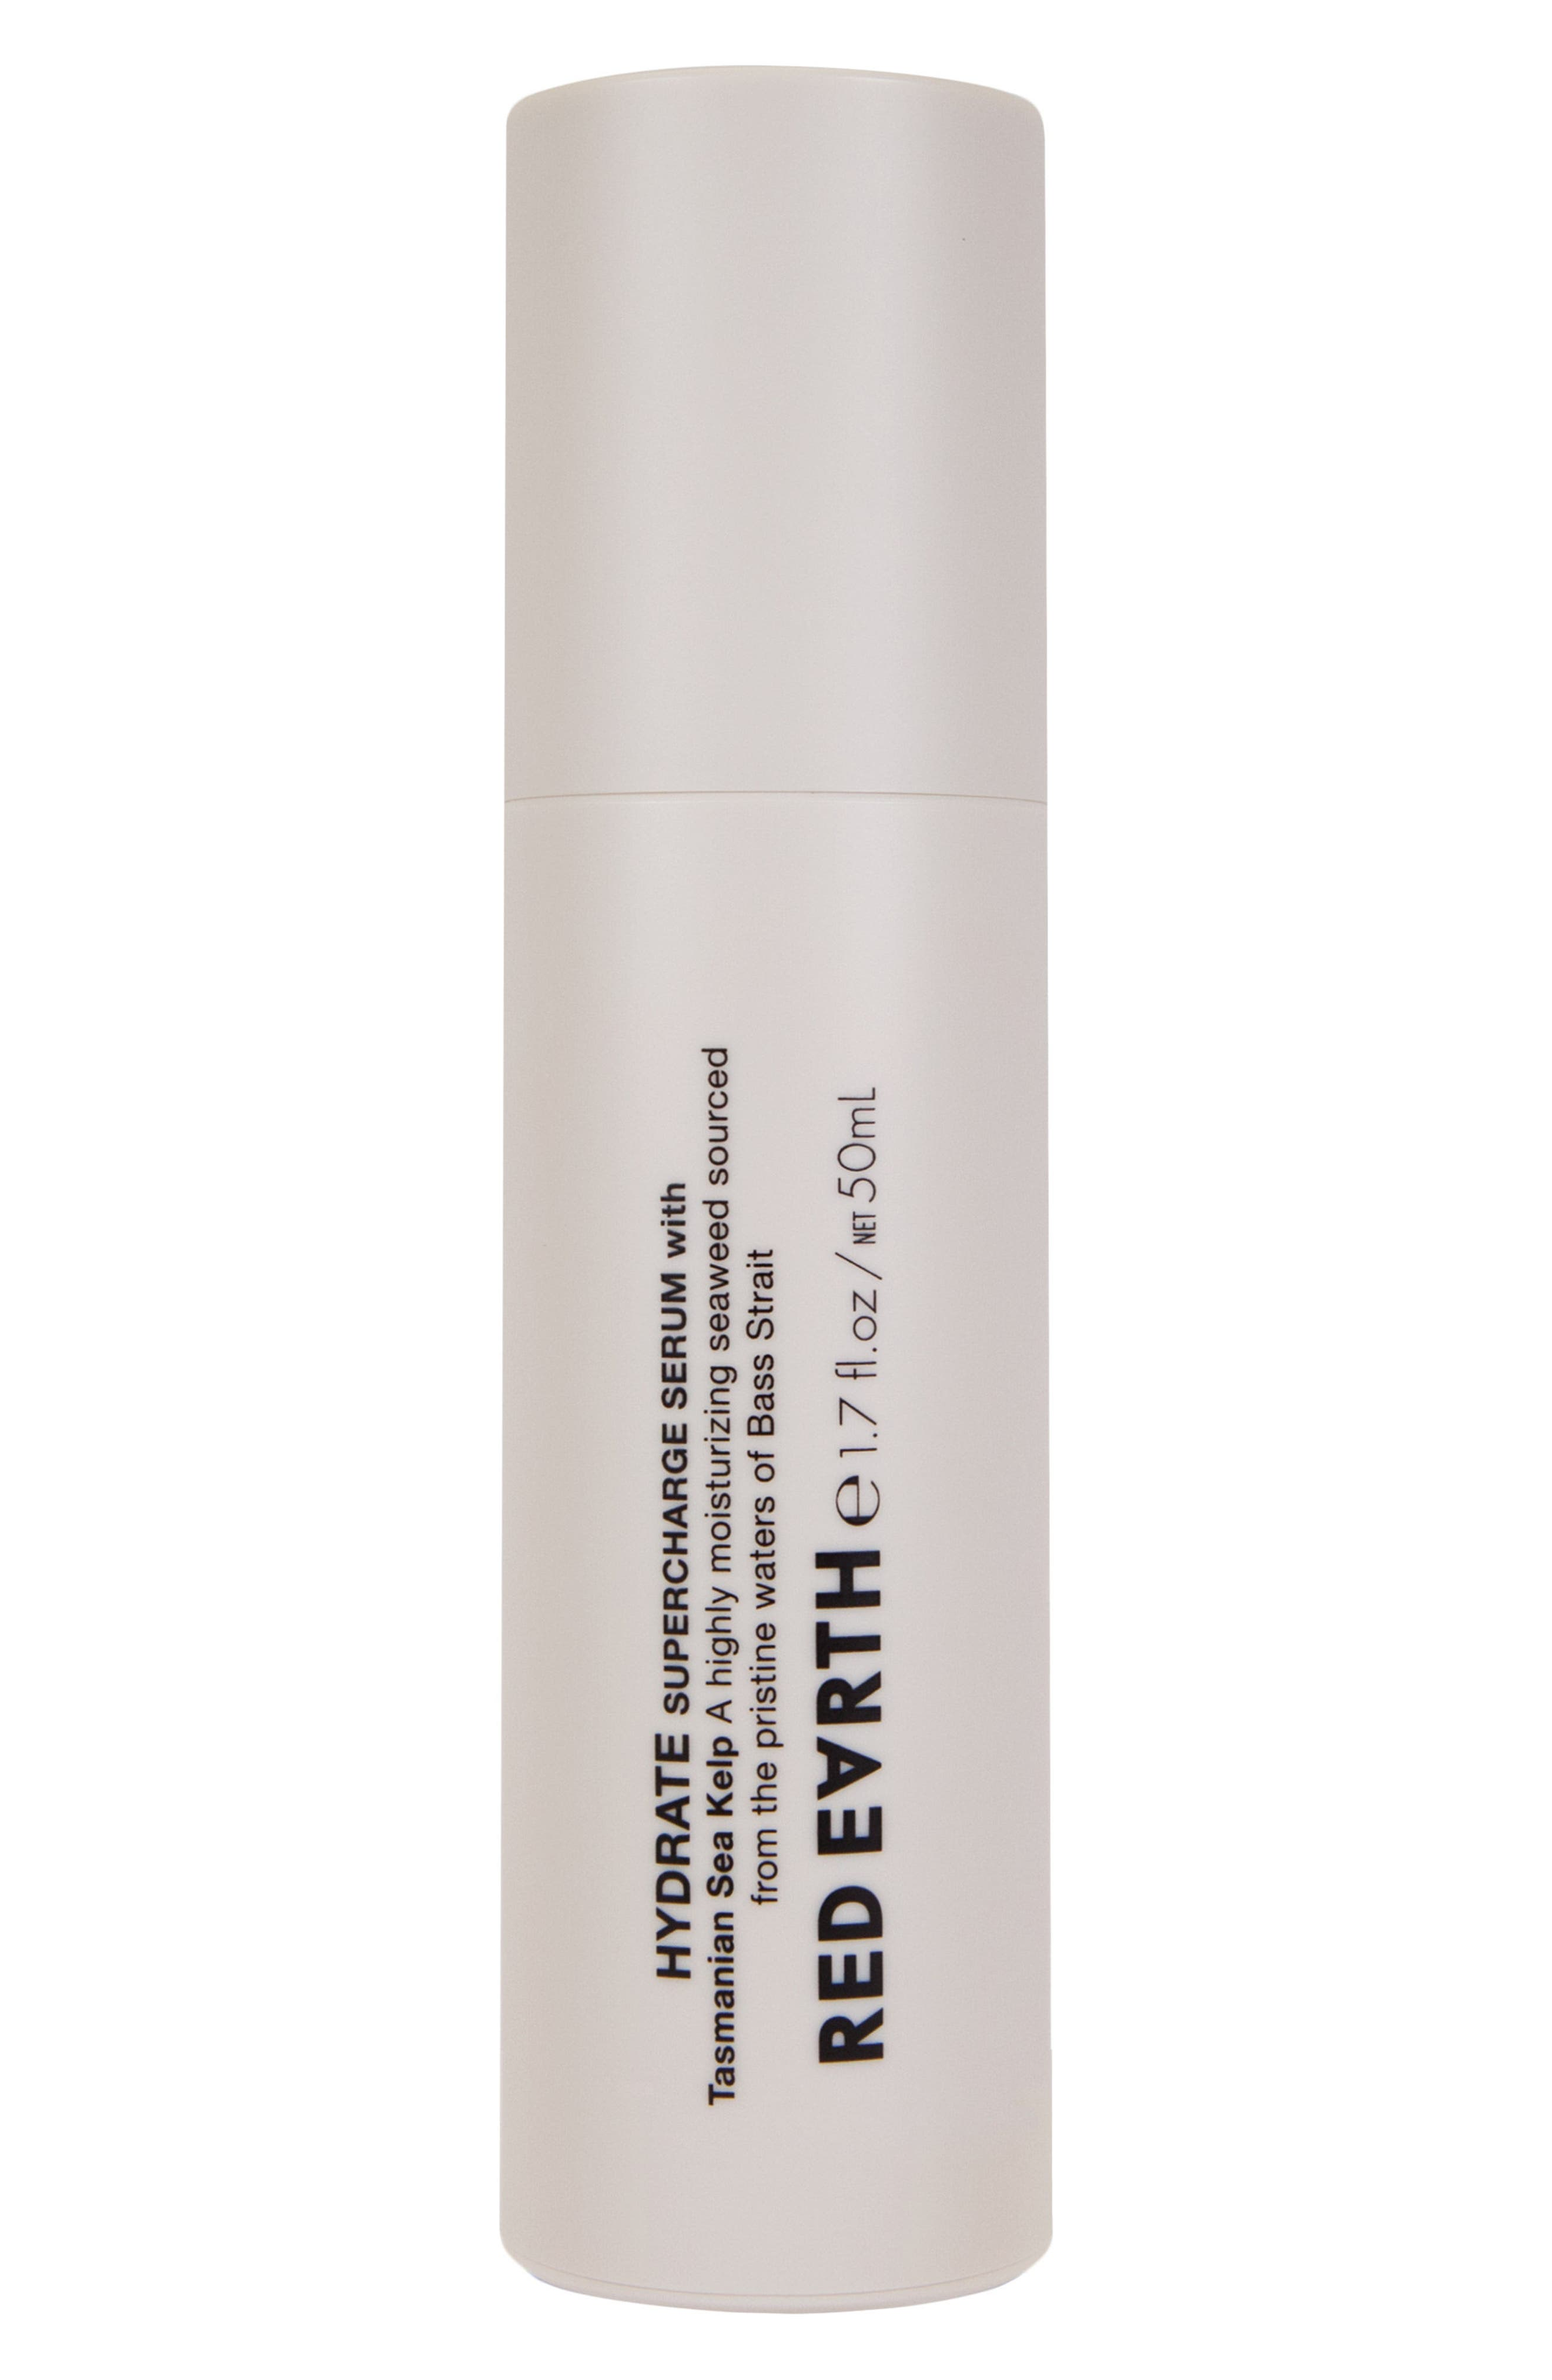 Hydrate Supercharge Serum,                         Main,                         color, No Color